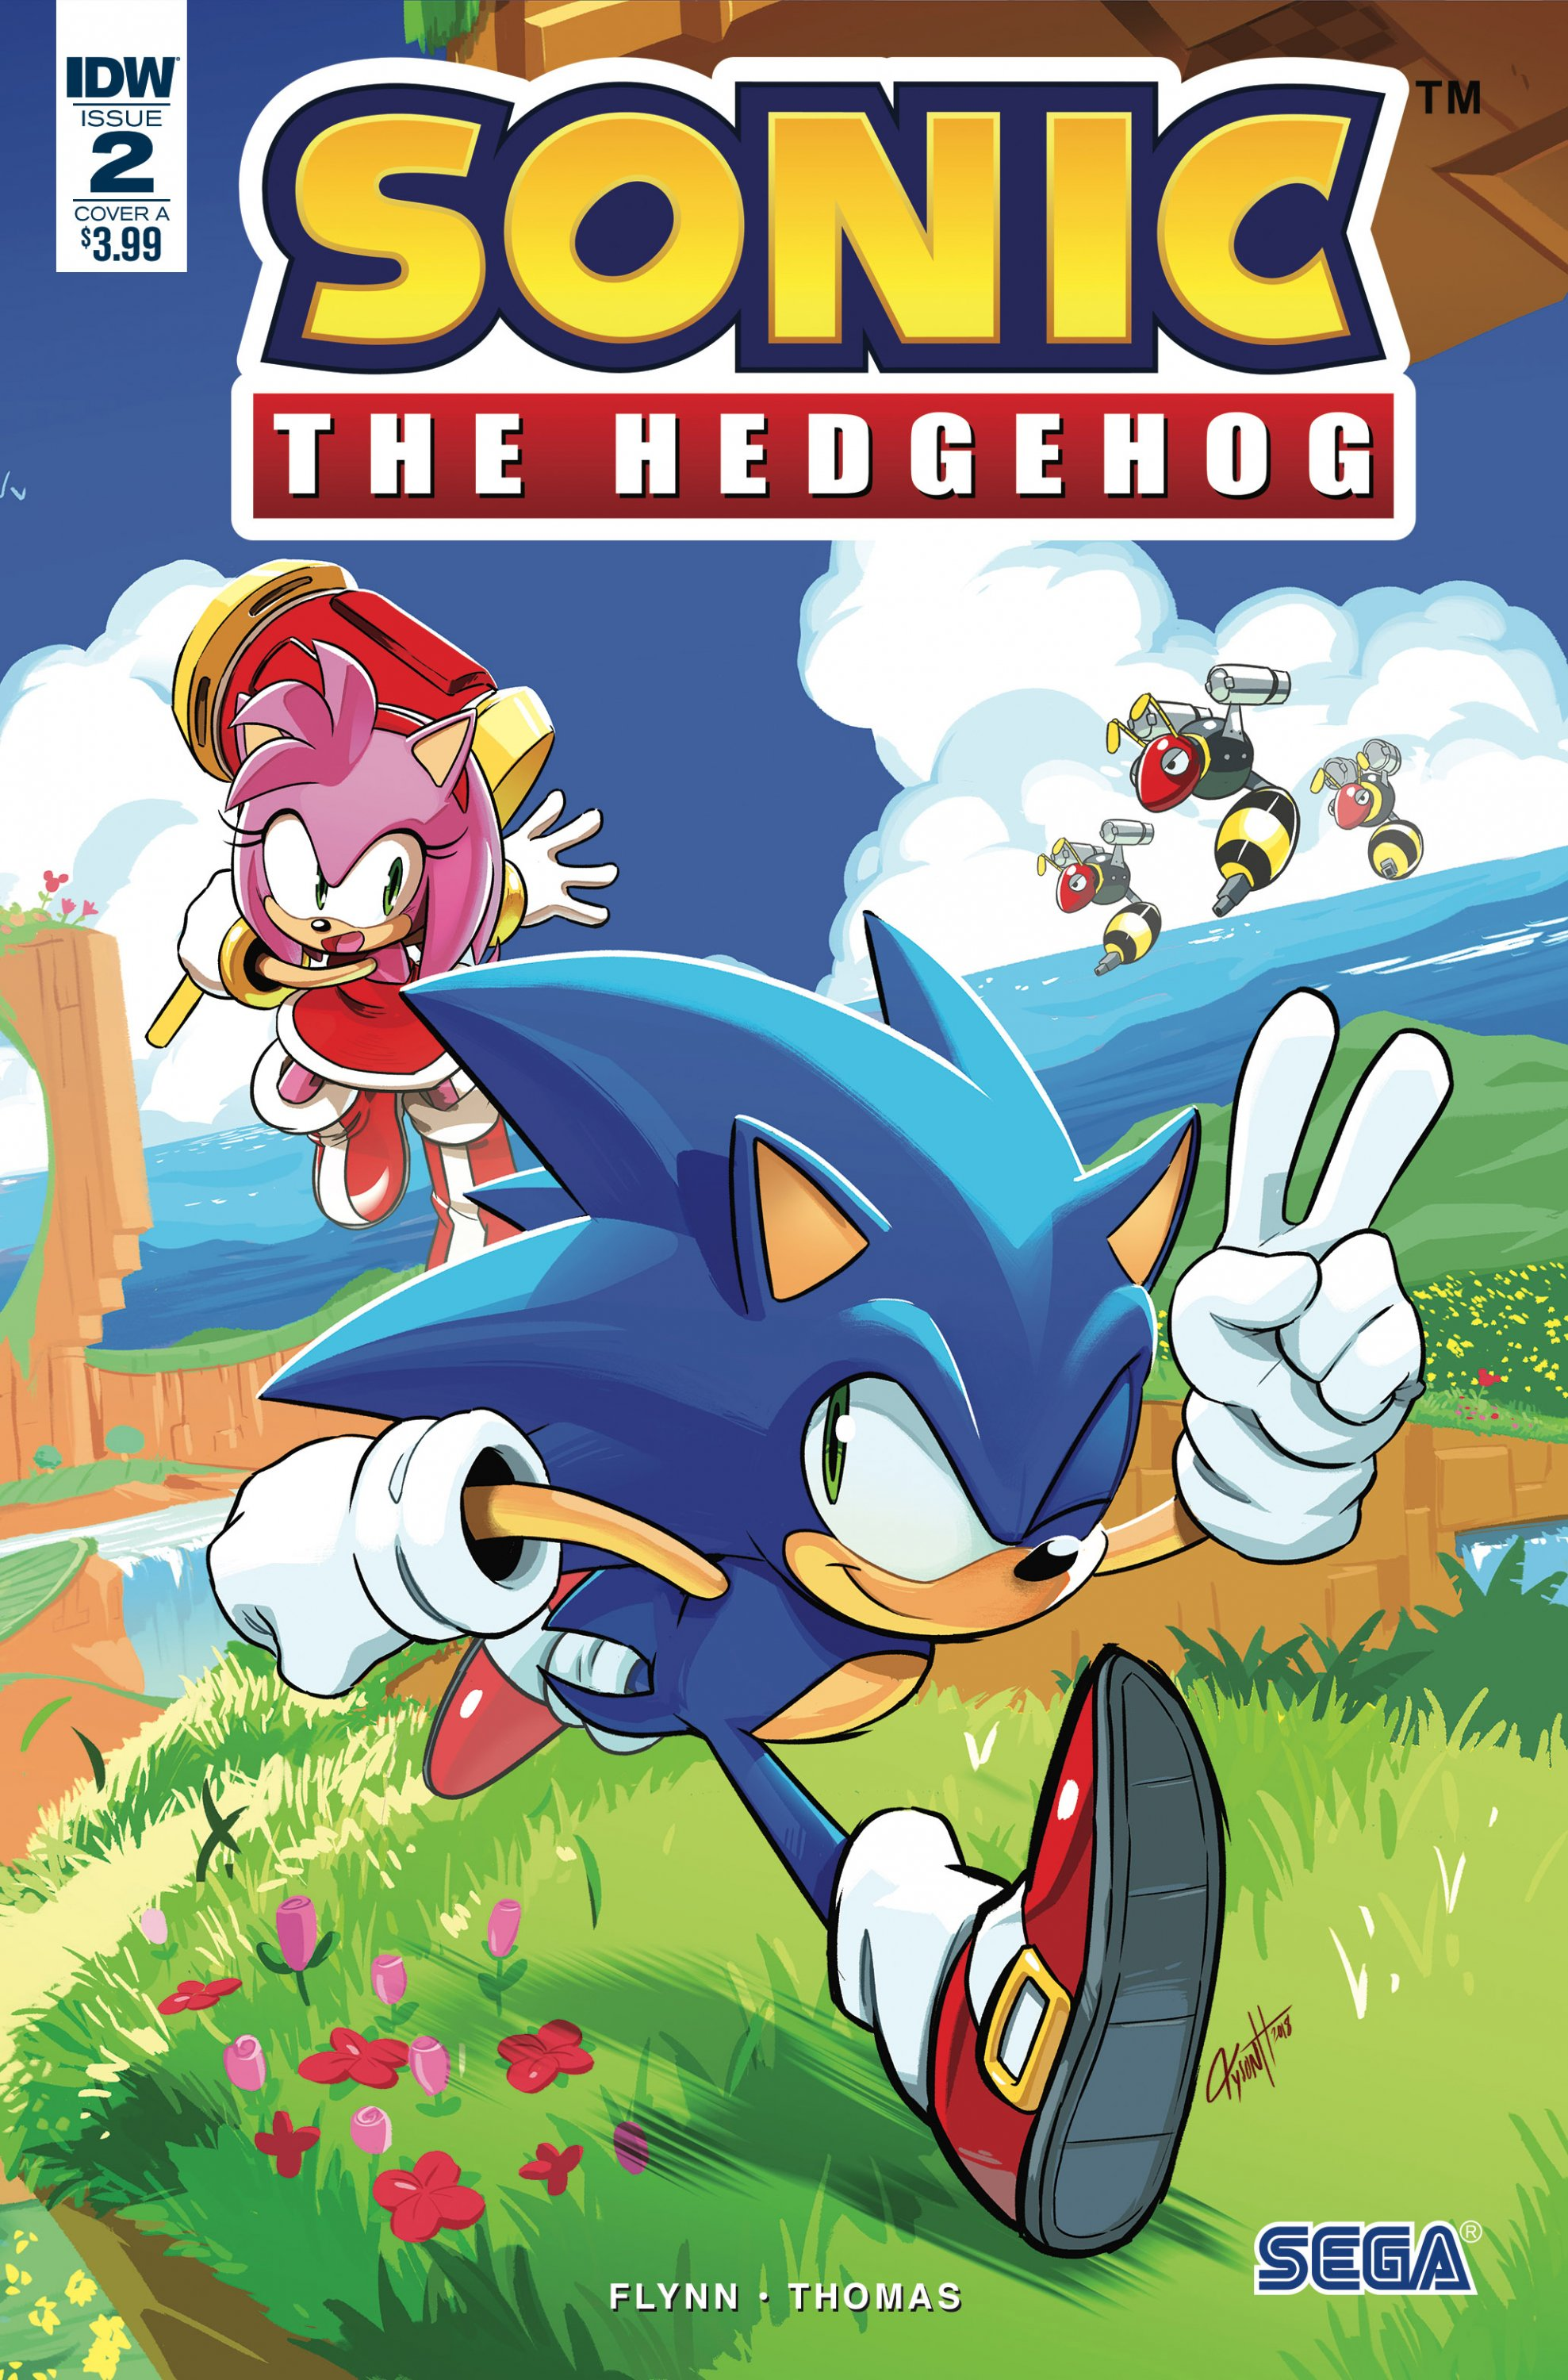 Sonic the Hedgehog 002 (April 2018) (cover a)